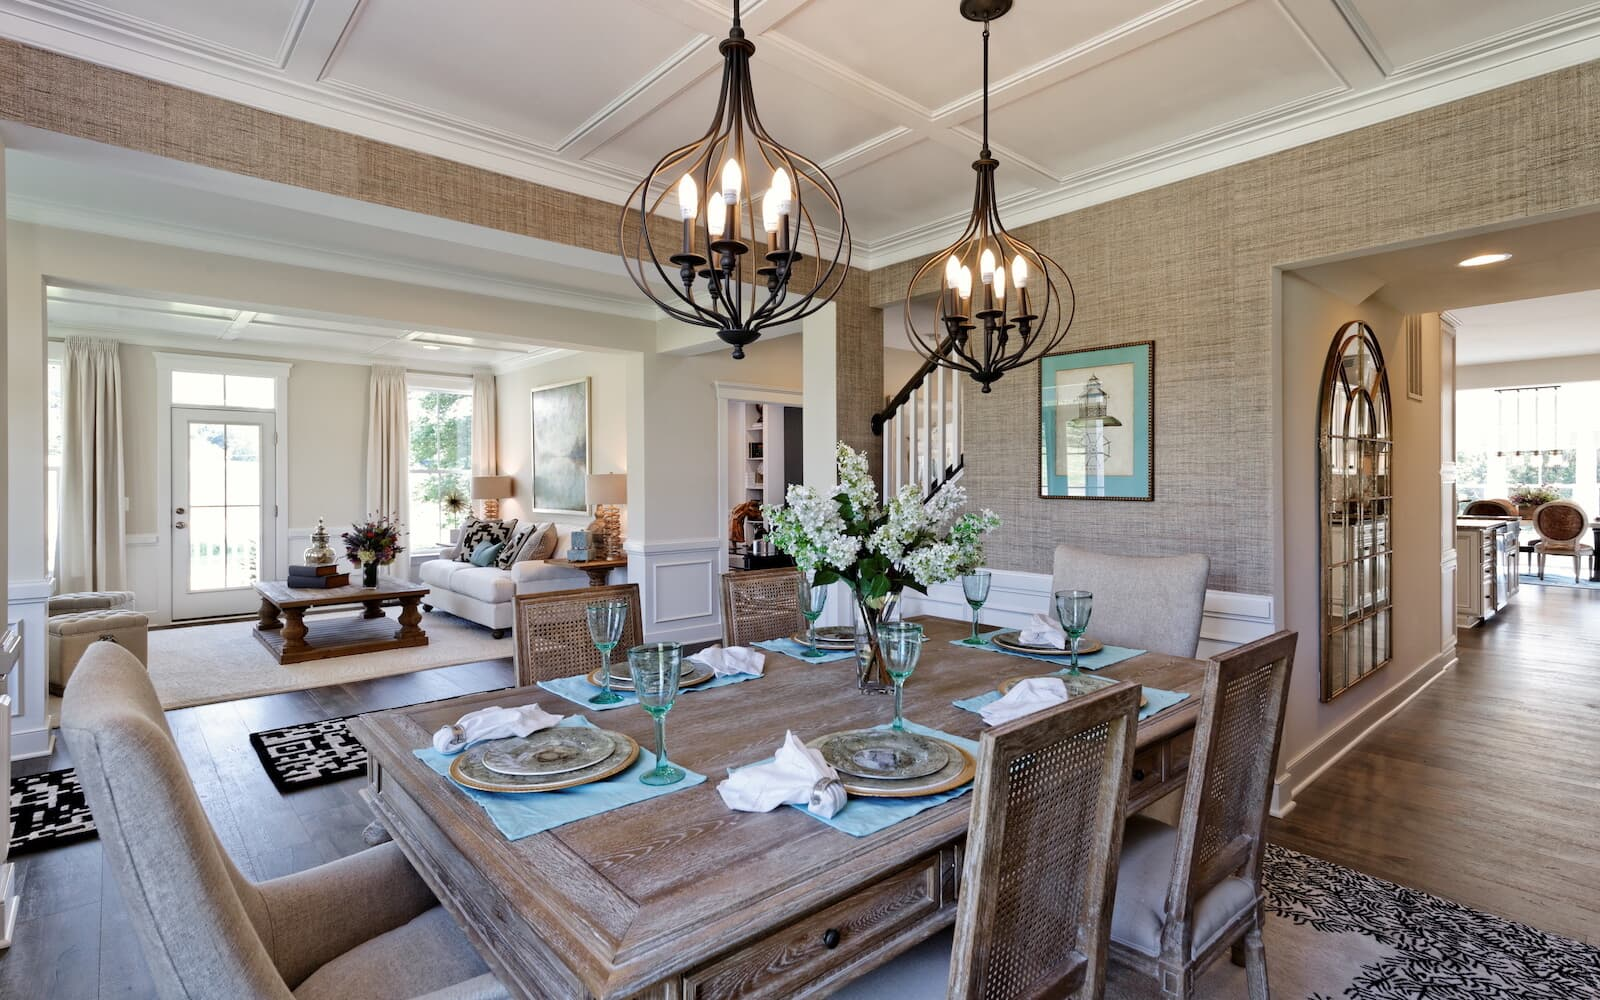 FillmoreII-dining-room-single-family-home-leesburg-va-waterford-manor-brookfield-residential